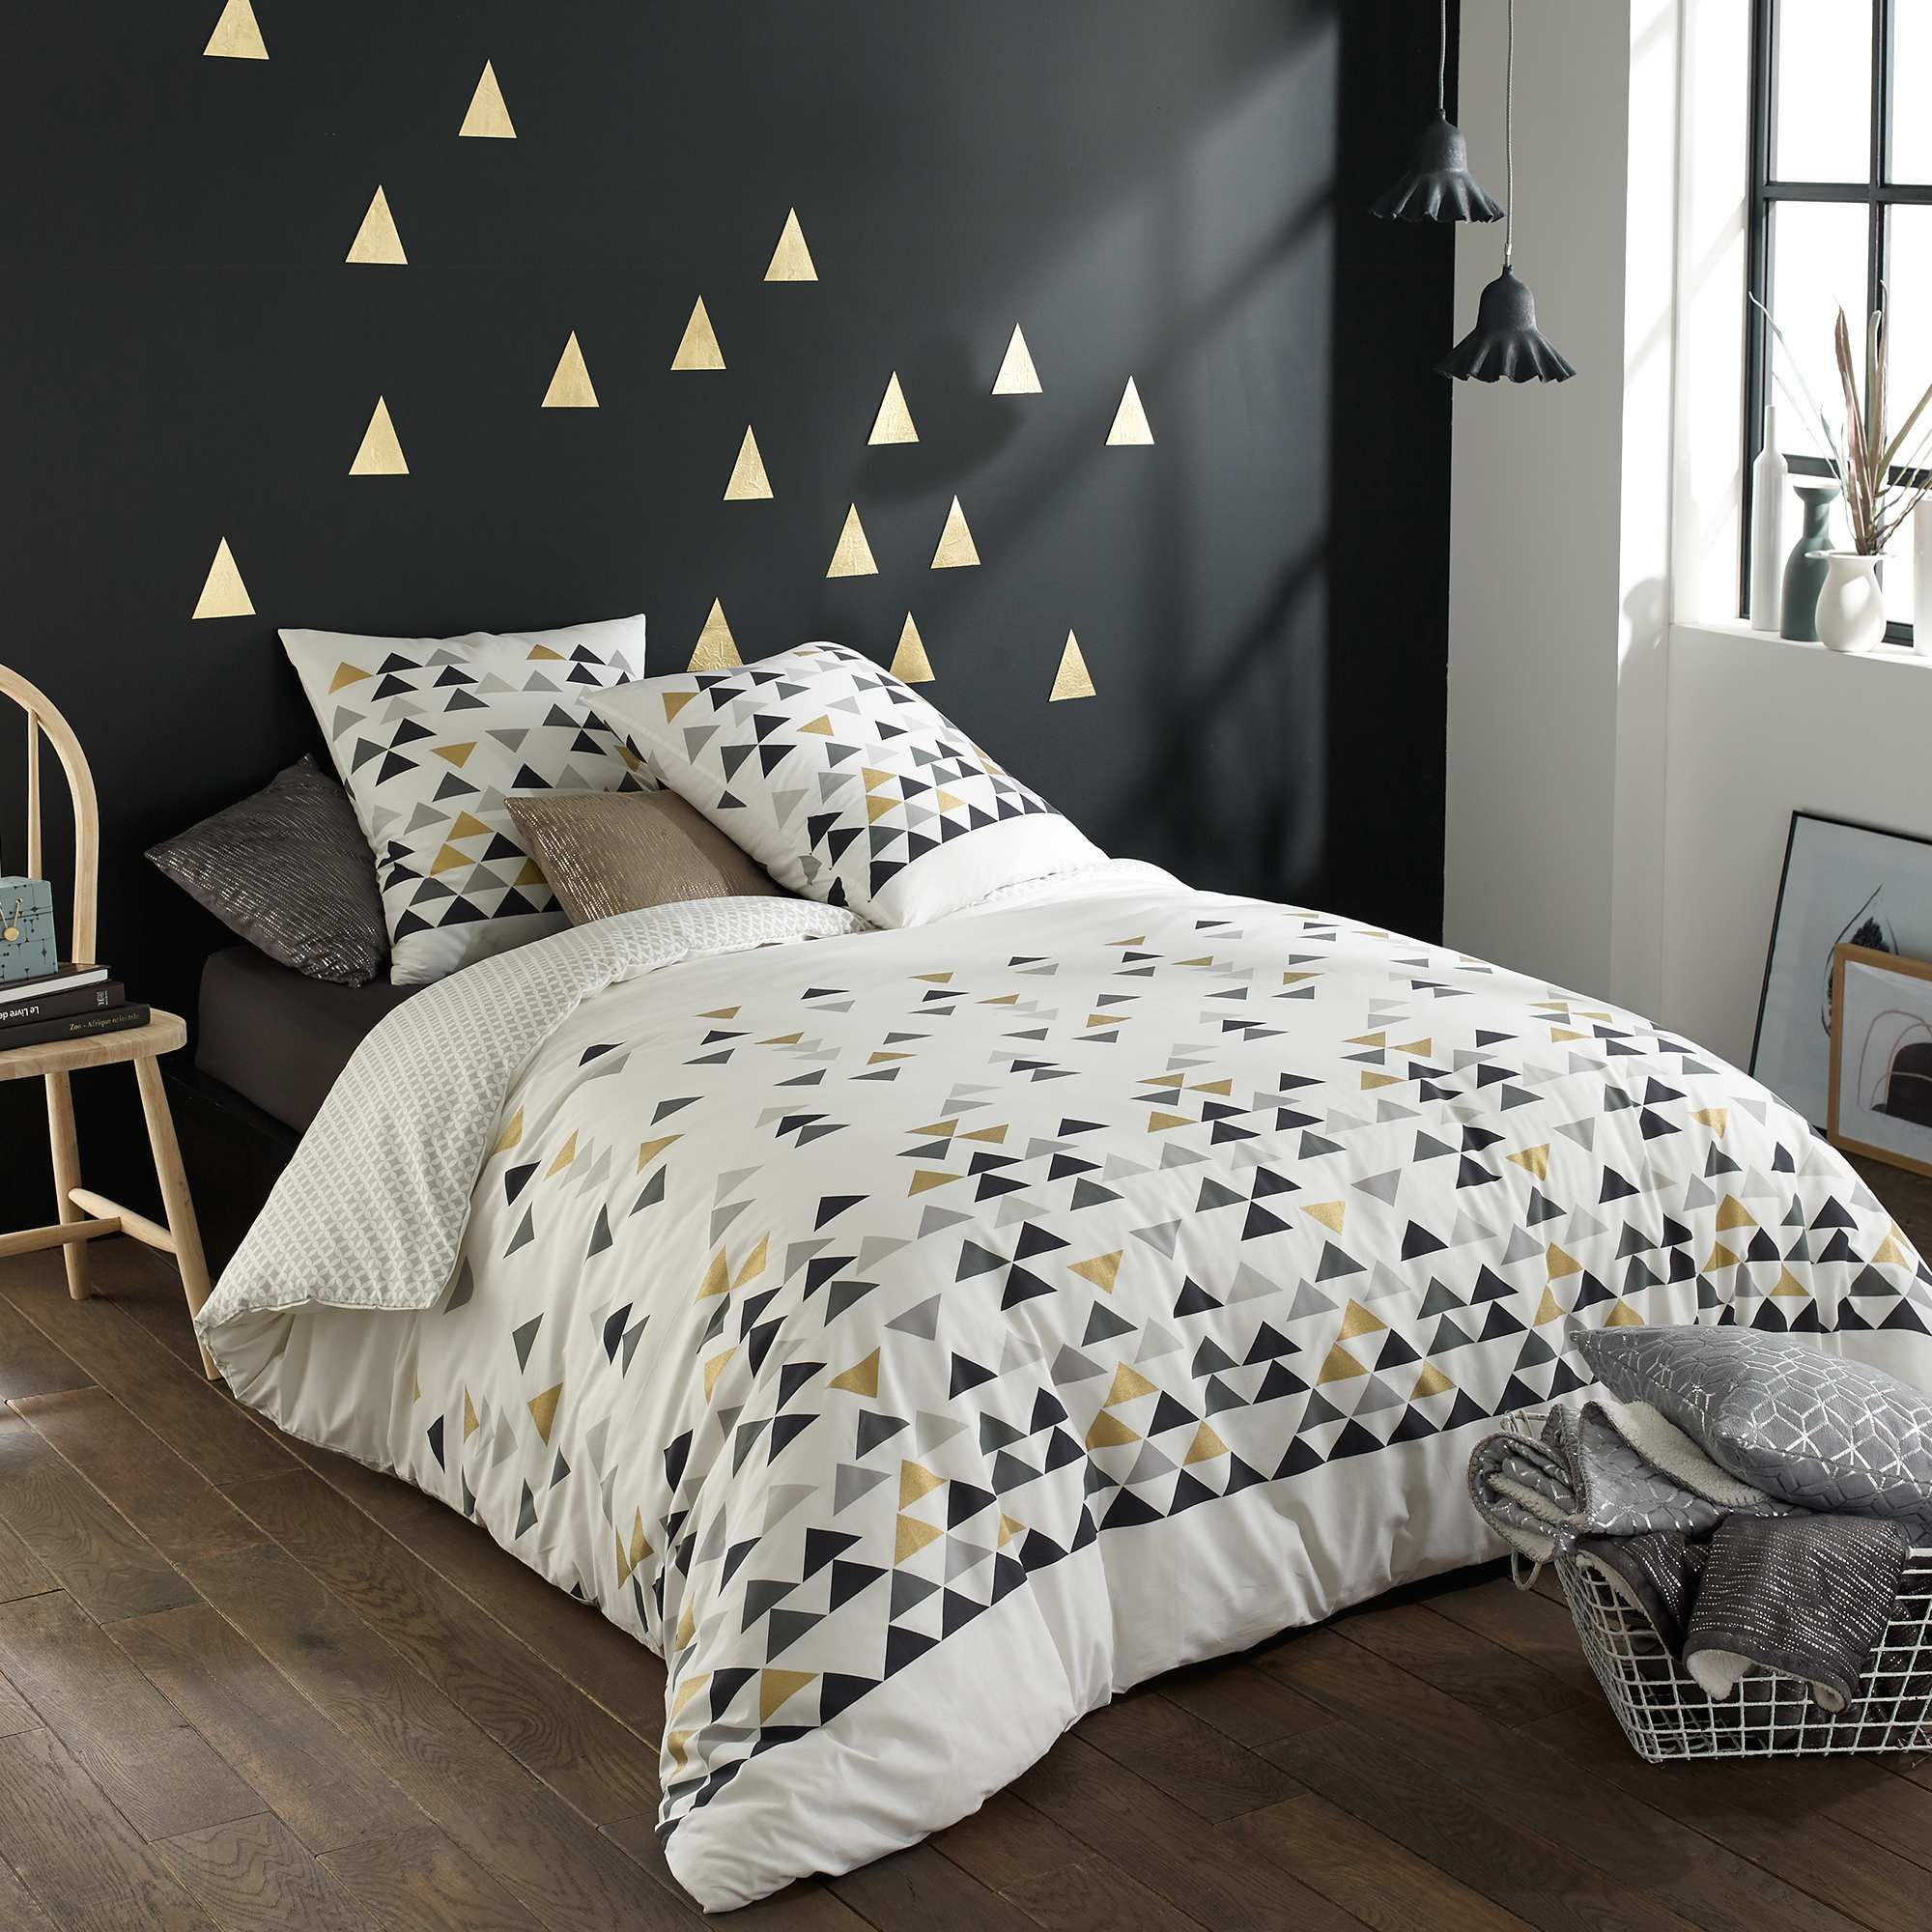 tee shirt pur coton imprim fantaisie triangles. Black Bedroom Furniture Sets. Home Design Ideas